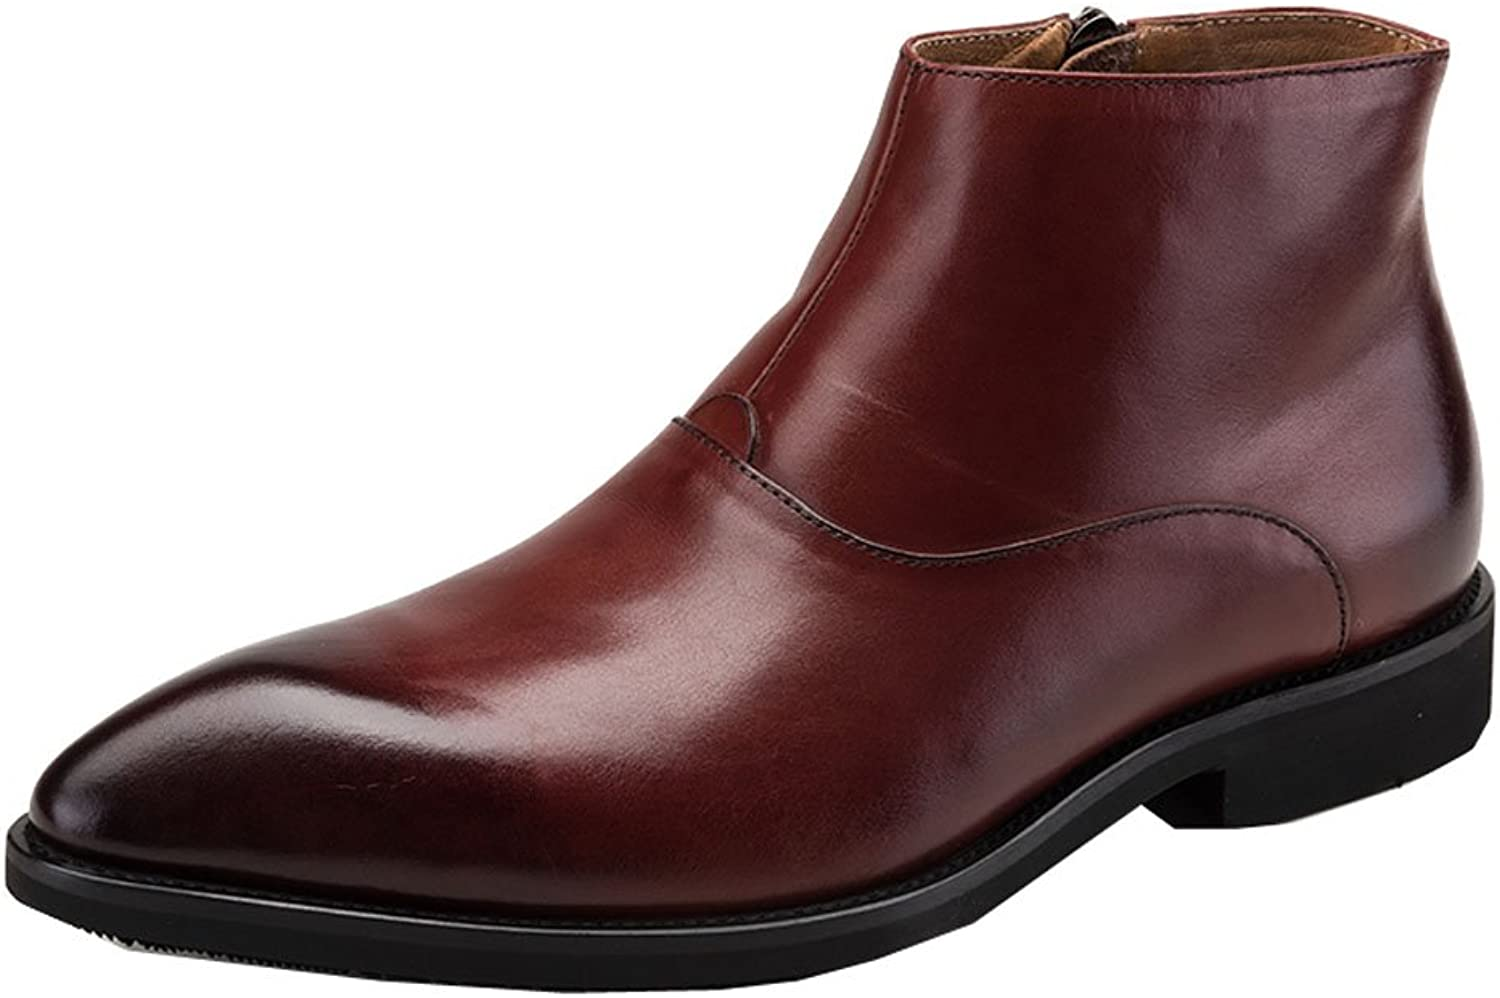 MedzRE Men's Winter Leather Ankle Boots with Side Zipper